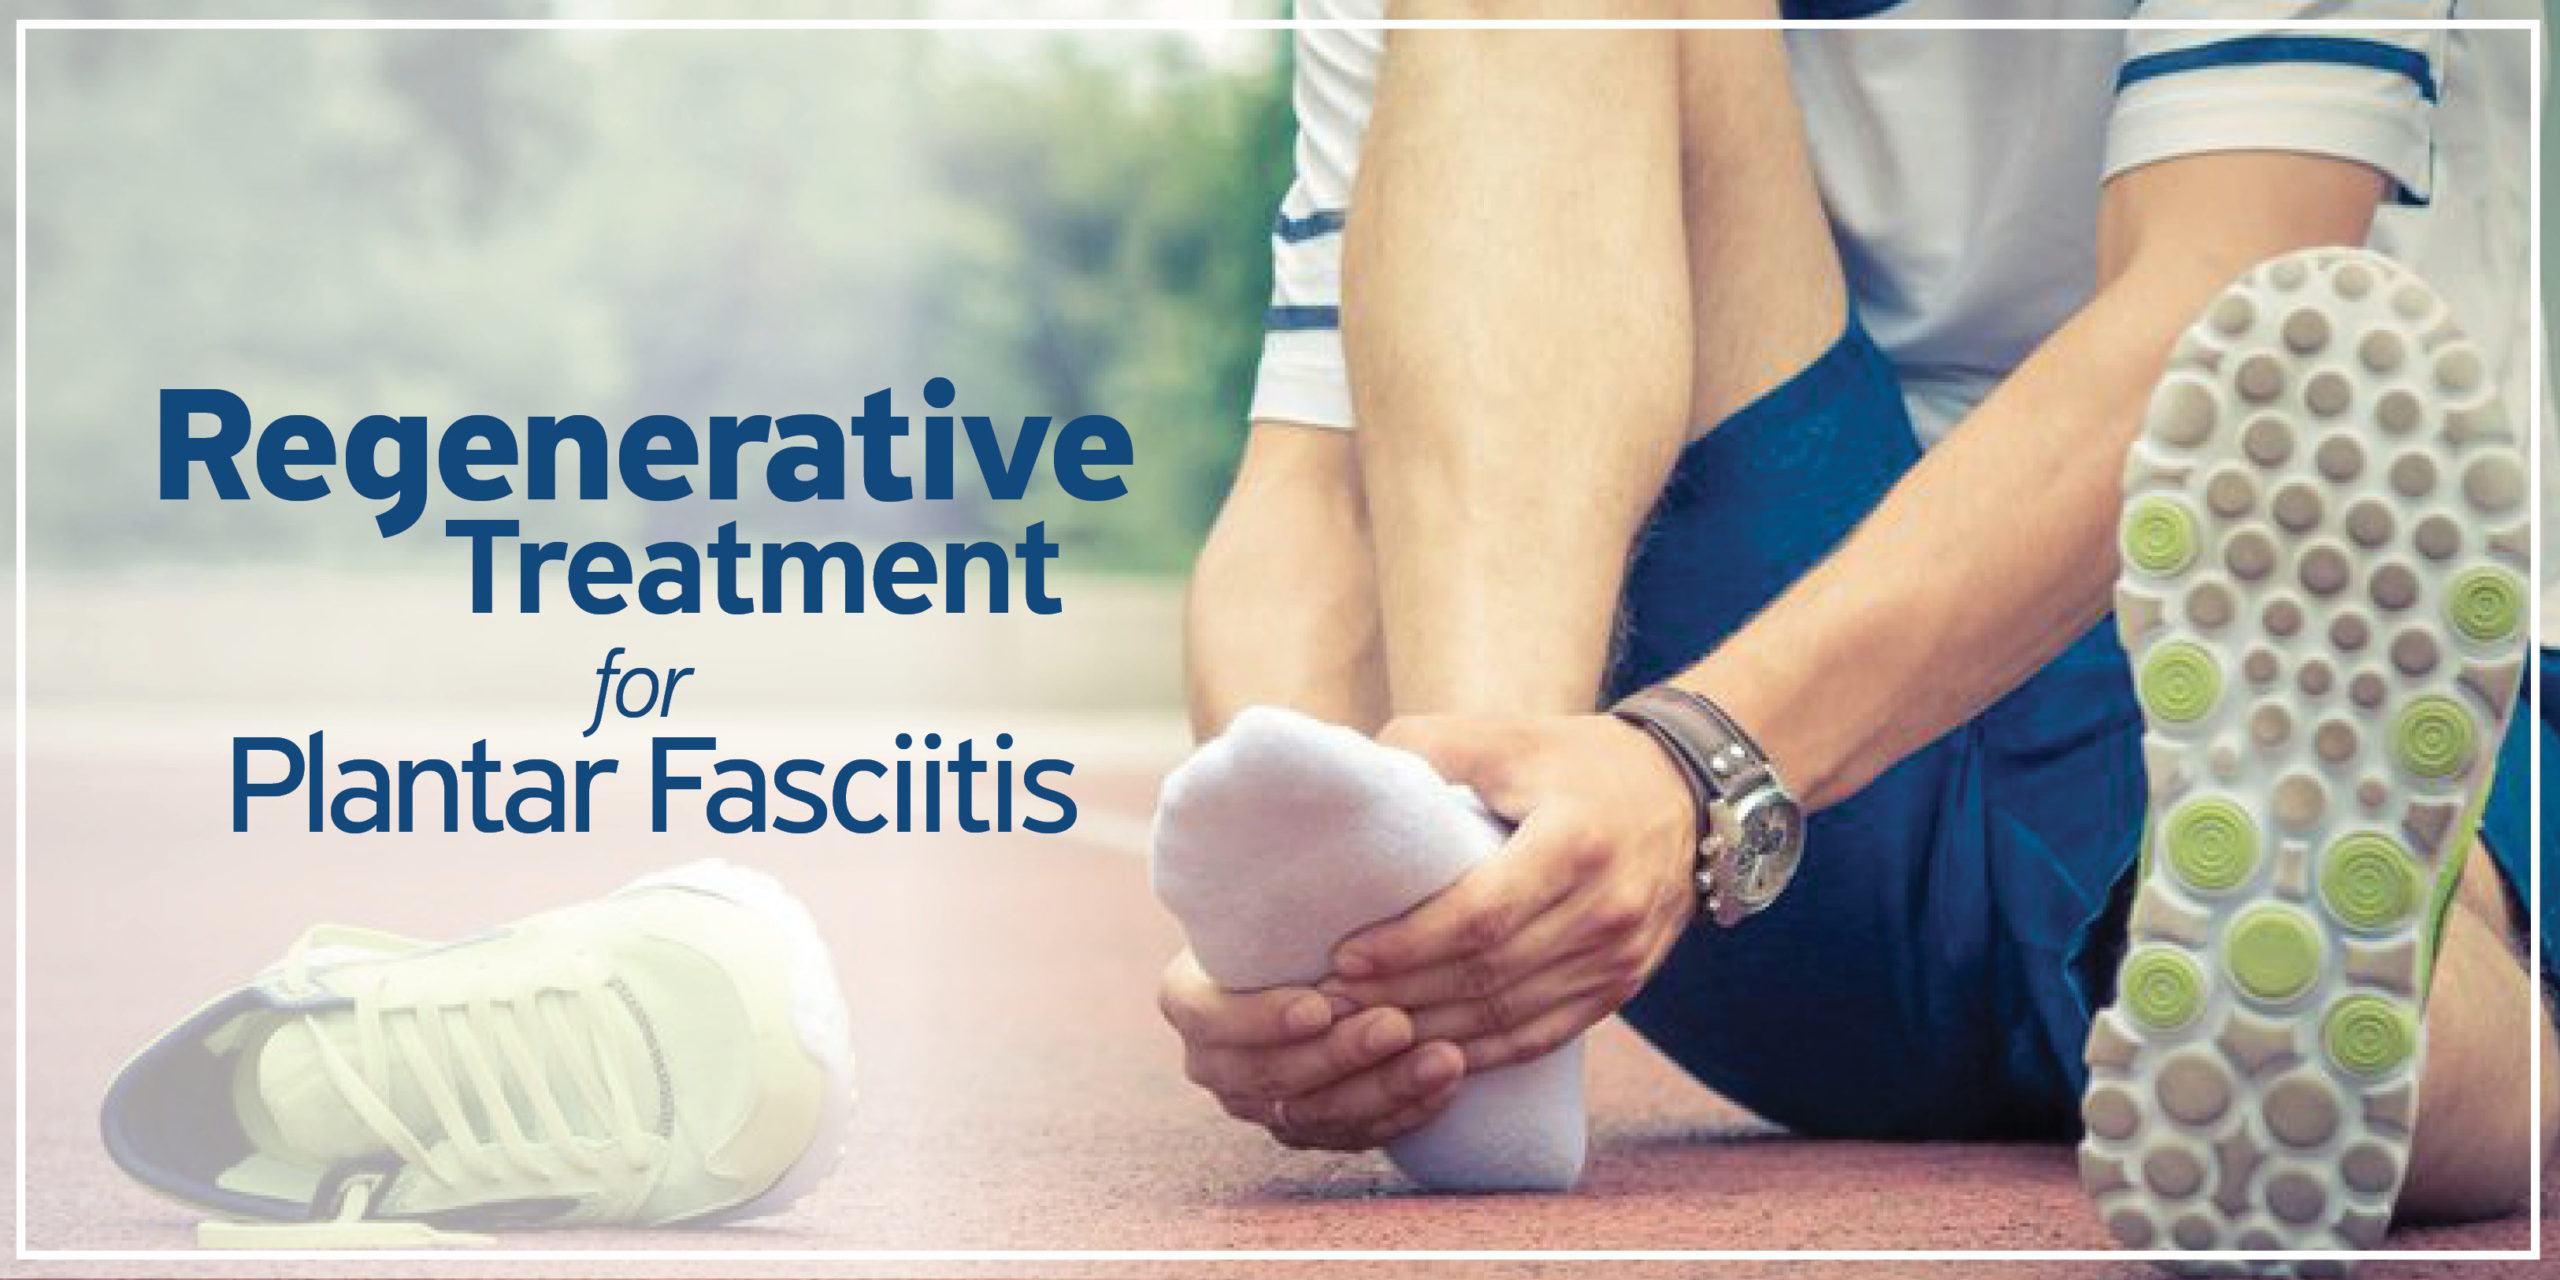 You are currently viewing Regenerative treatment for Plantar Fasciitis